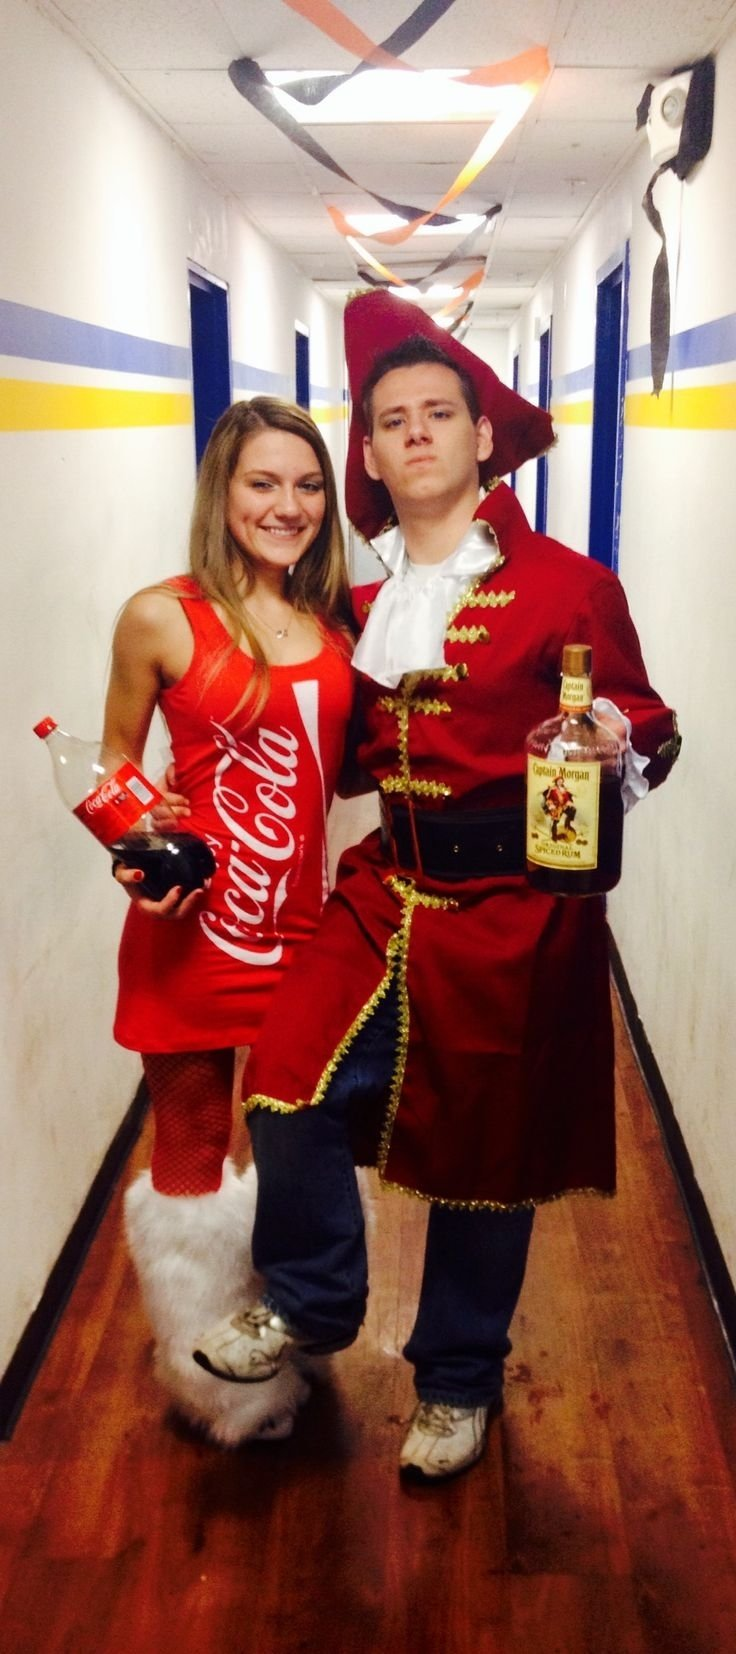 10 Attractive Clever Halloween Costume Ideas Couples 24 best halloween costumes images on pinterest costume ideas 1 2020